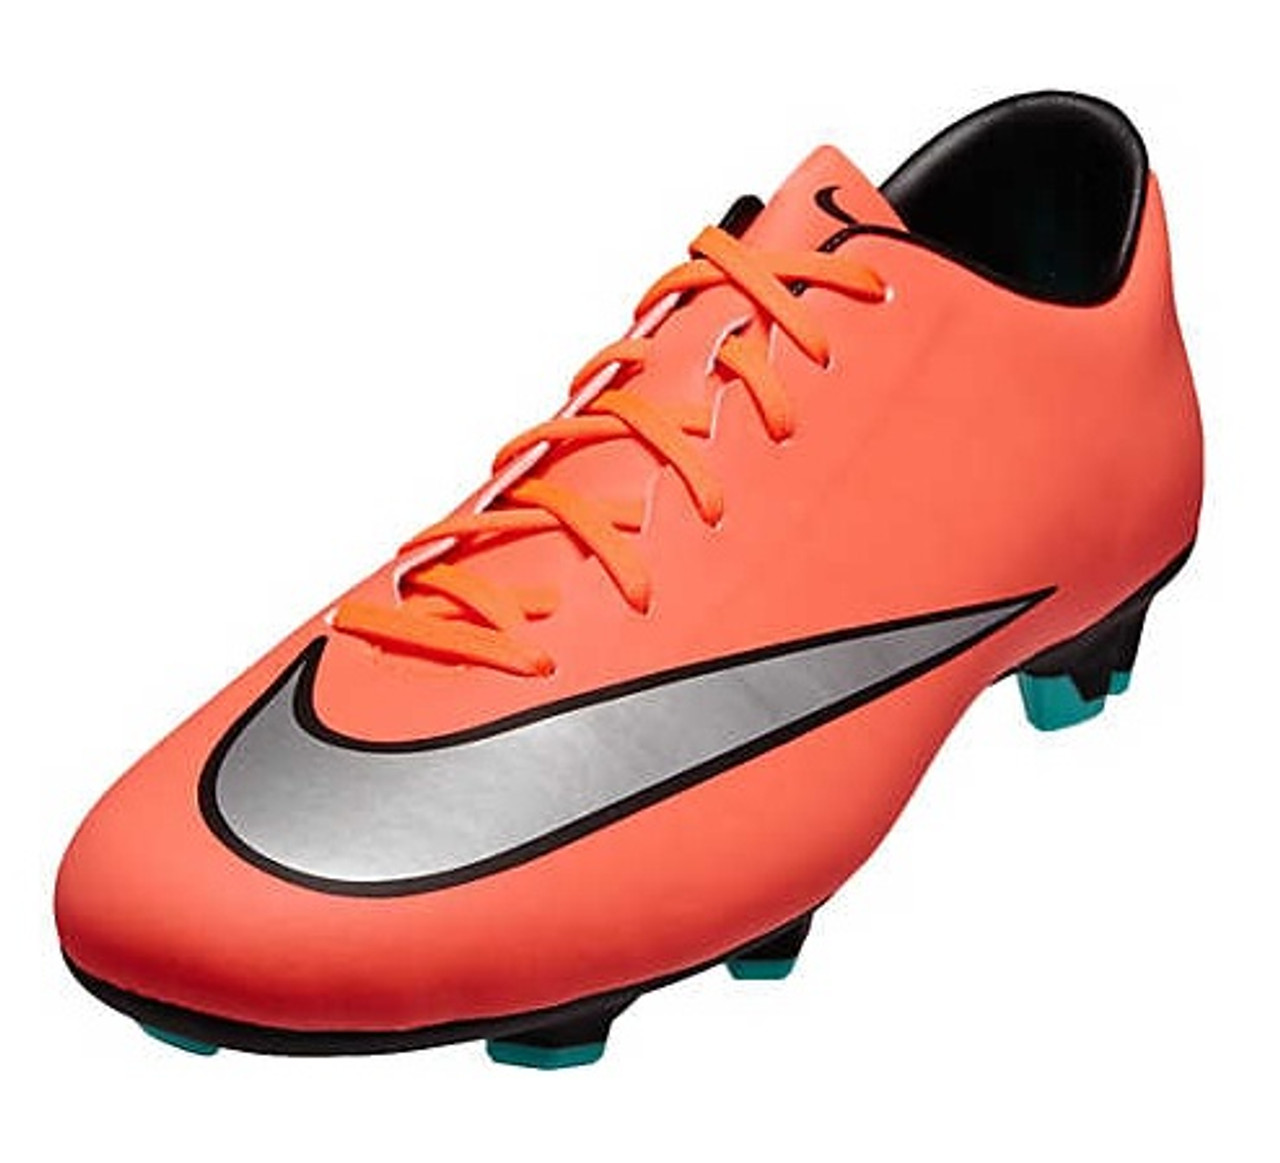 uk availability 02c43 563f0 Nike Mercurial Victory V FG - Bright Mango/Metallic Silver/Hyper Turquoise  (042719)